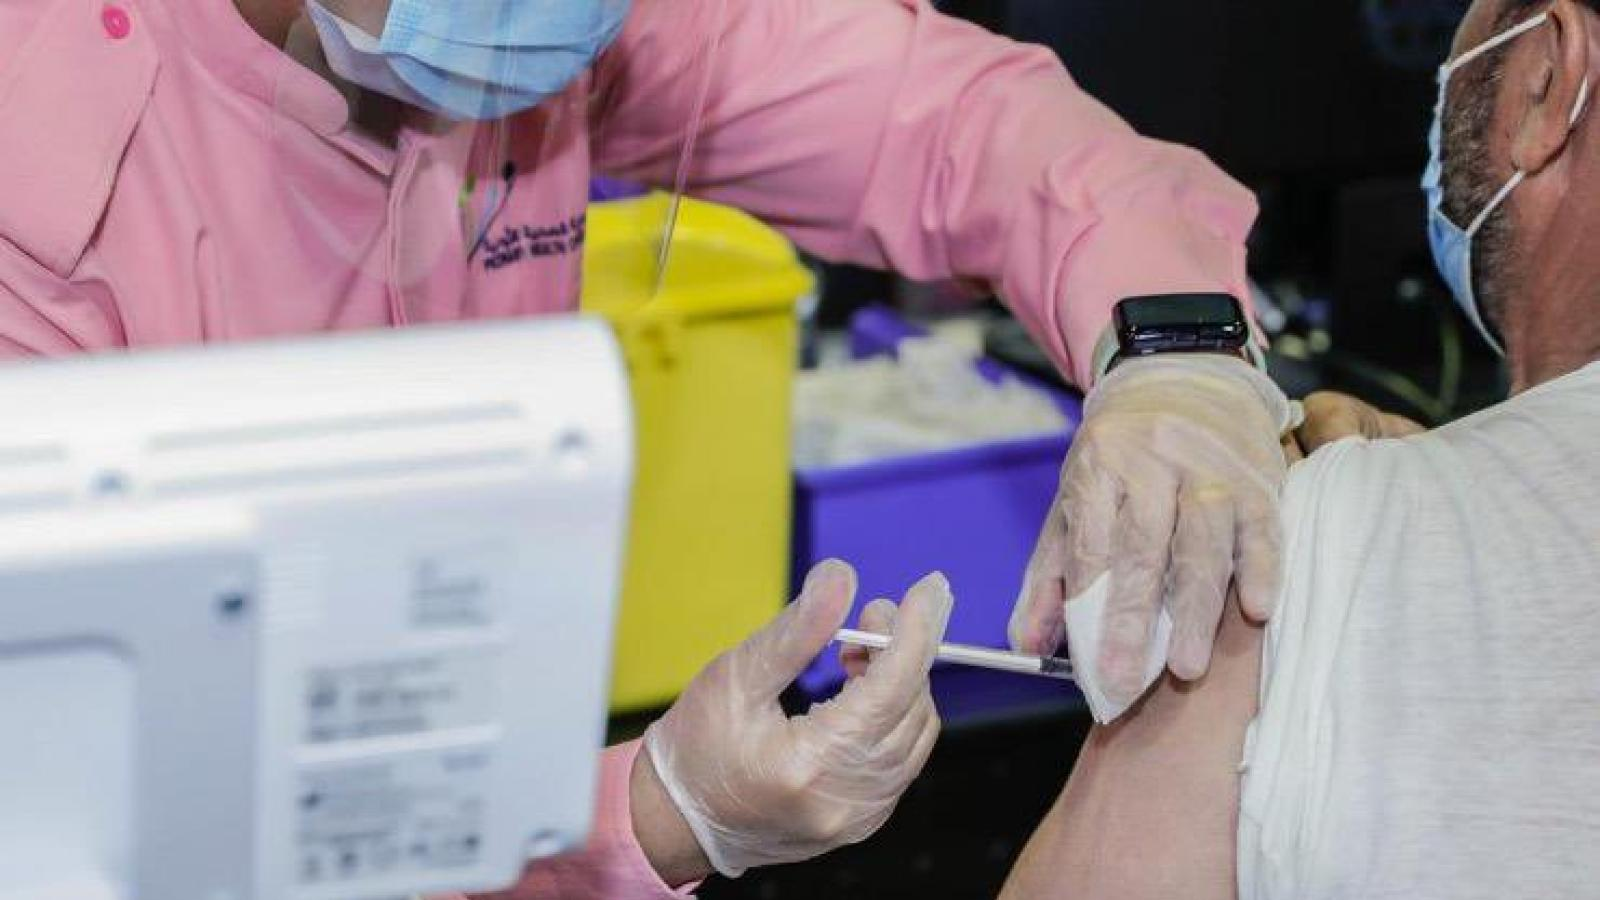 98.4 percent of vaccinated individuals not infected with COVID-19: health official